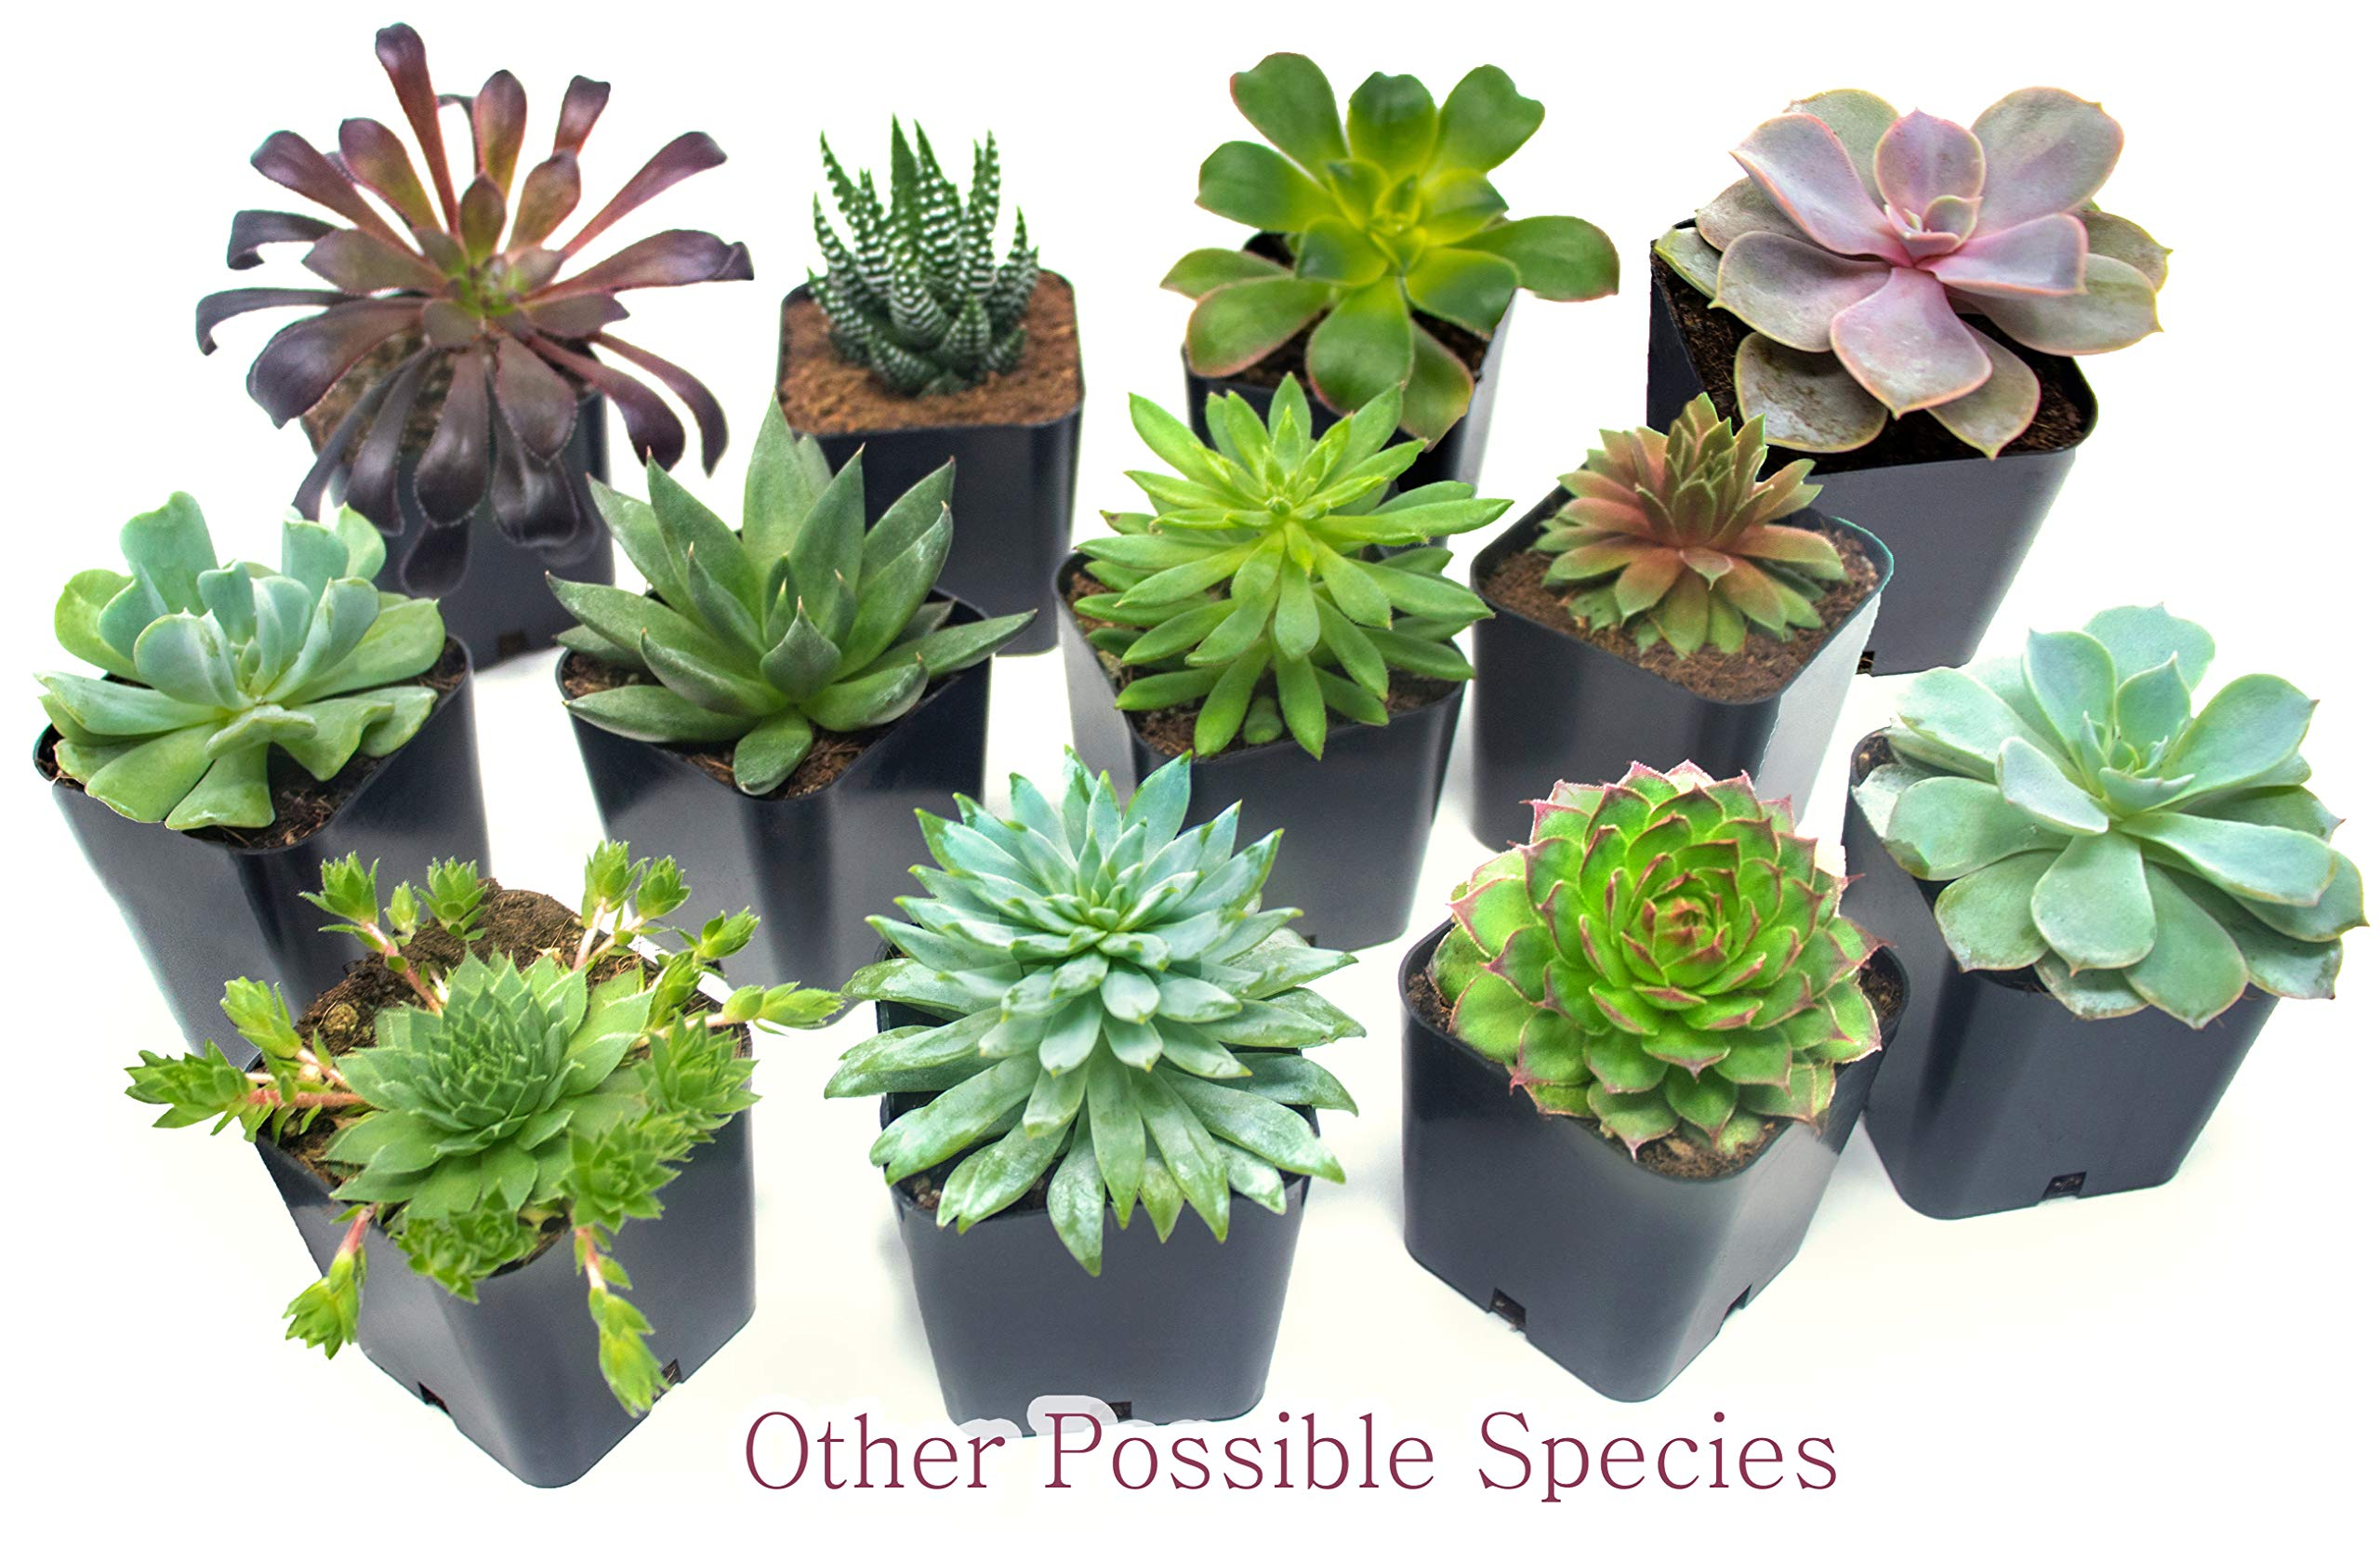 Succulent Plants (5 Pack), Fully Rooted in Planter Pots with Soil -  Real Live Potted Succulents / Unique Indoor Cactus Decor by Plants for Pets 12 HAND SELECTED: Every pack of succulents we send is hand-picked. You will receive a unique collection of species that are FULLY ROOTED IN 2 INCH POTS, which will be similar to the product photos (see photo 2 for scale). Note that we rotate our nursery stock often, so the exact species we send changes every week. THE EASIEST HOUSE PLANTS: More appealing than artificial plastic or fake faux plants, and care is a cinch. If you think you can't keep houseplants alive, you're wrong; our succulents don't require fertilizer and can be planted in a decorative pot of your choice within seconds. DIY HOME DECOR: The possibilities are only limited by your imagination; display them in a plant holder, a wall mount, a geometric glass vase, or even in a live wreath. Because of their amazingly low care requirements, they can even make the perfect desk centerpiece for your office.